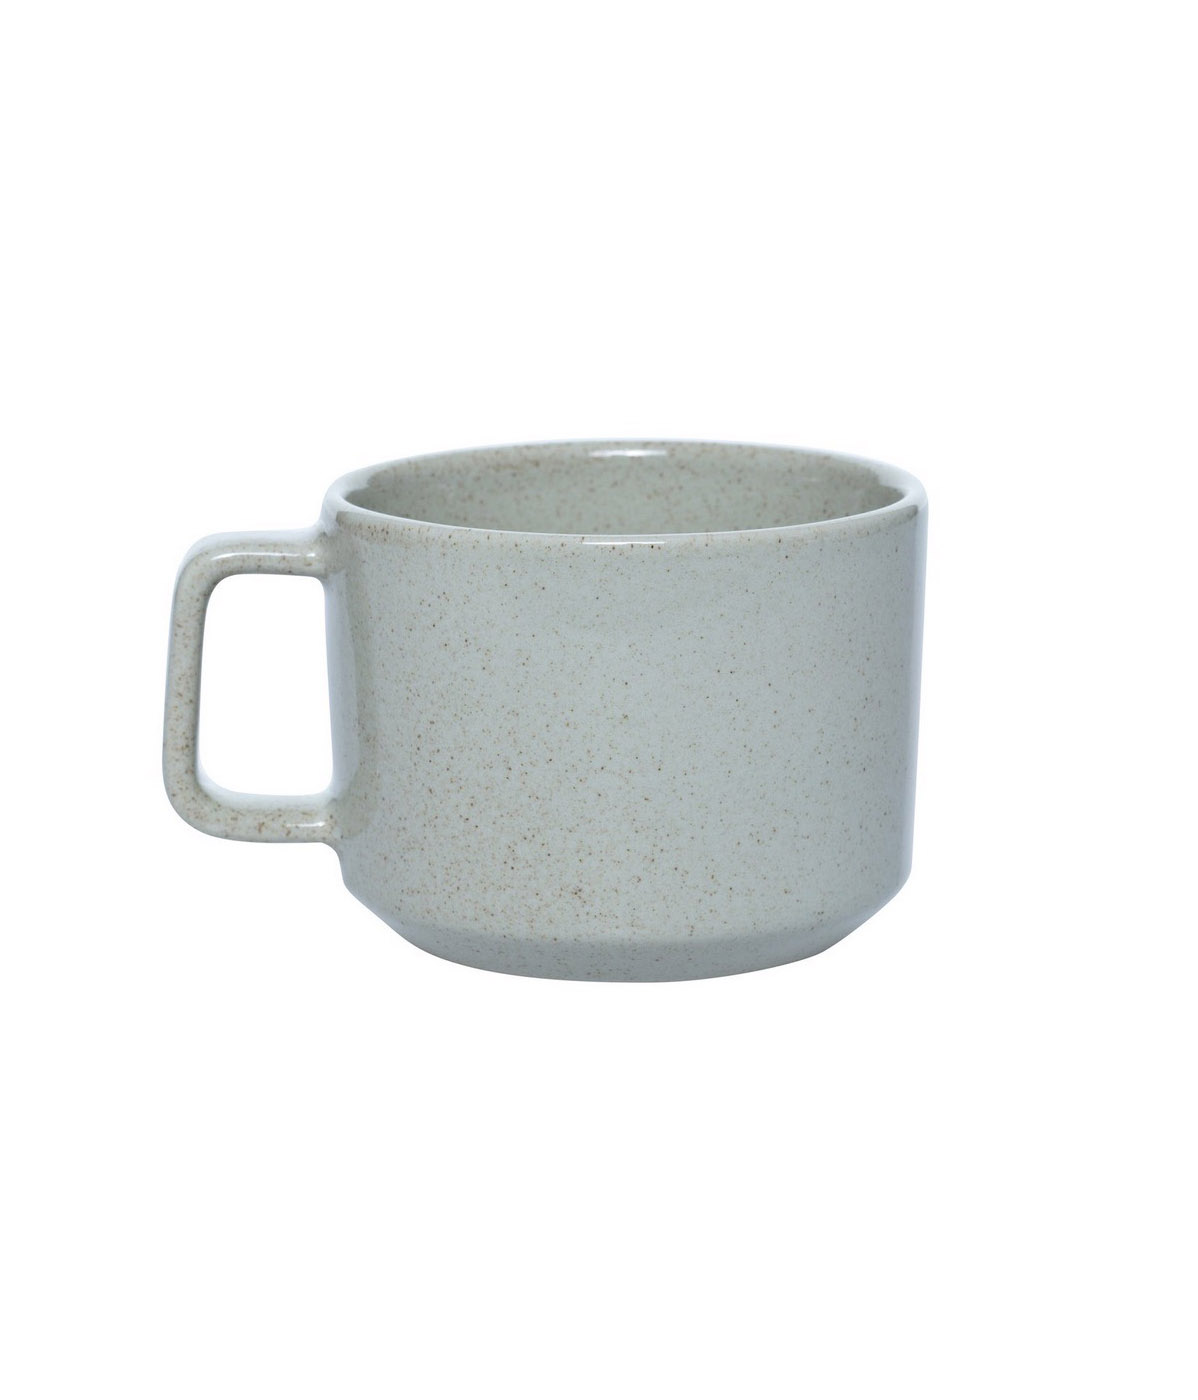 cup mist